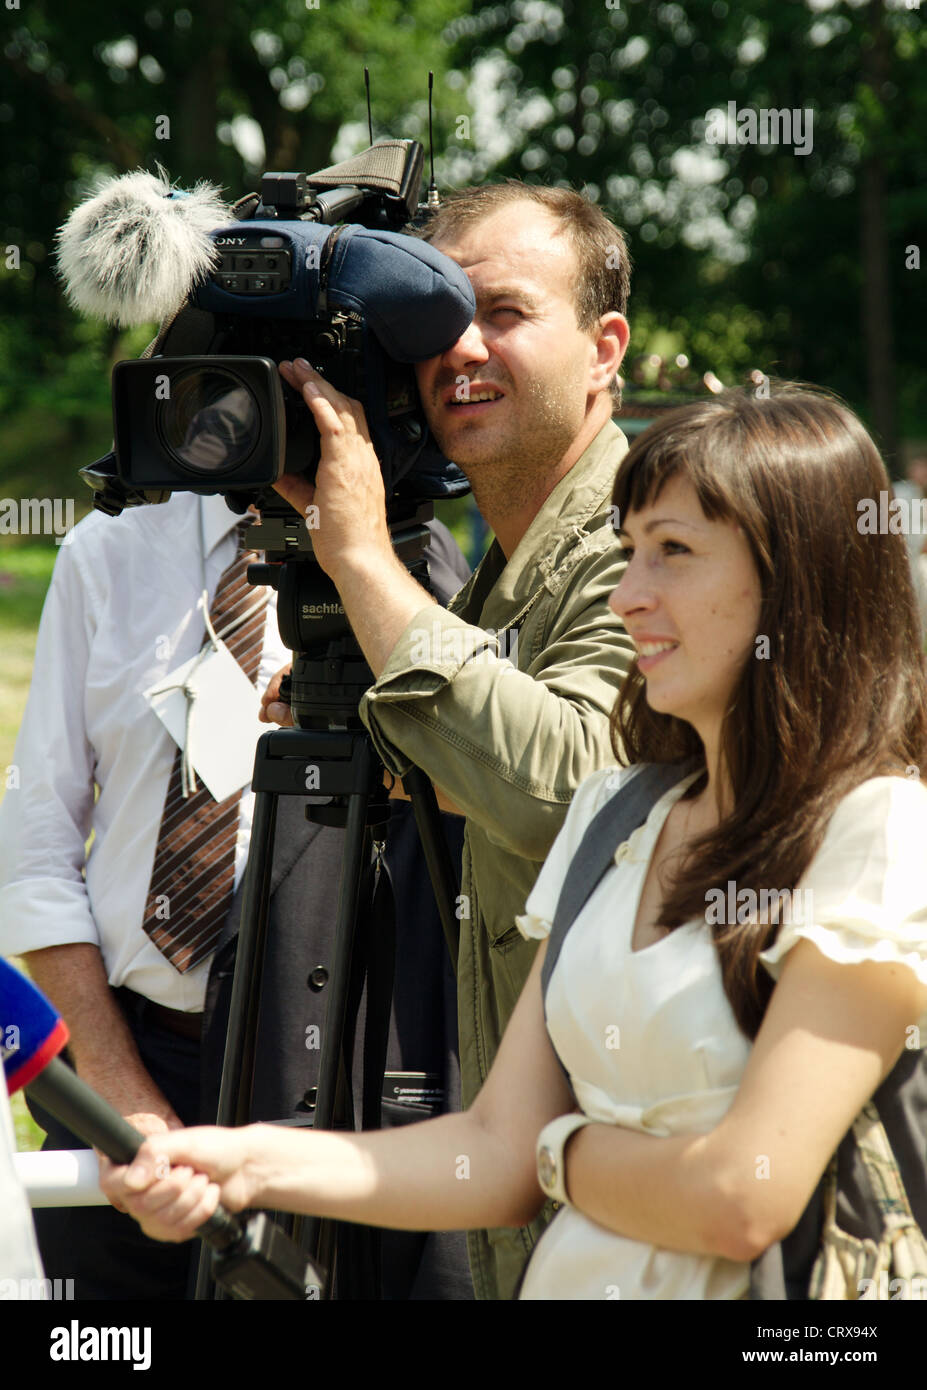 cameraman and correspondent - Stock Image